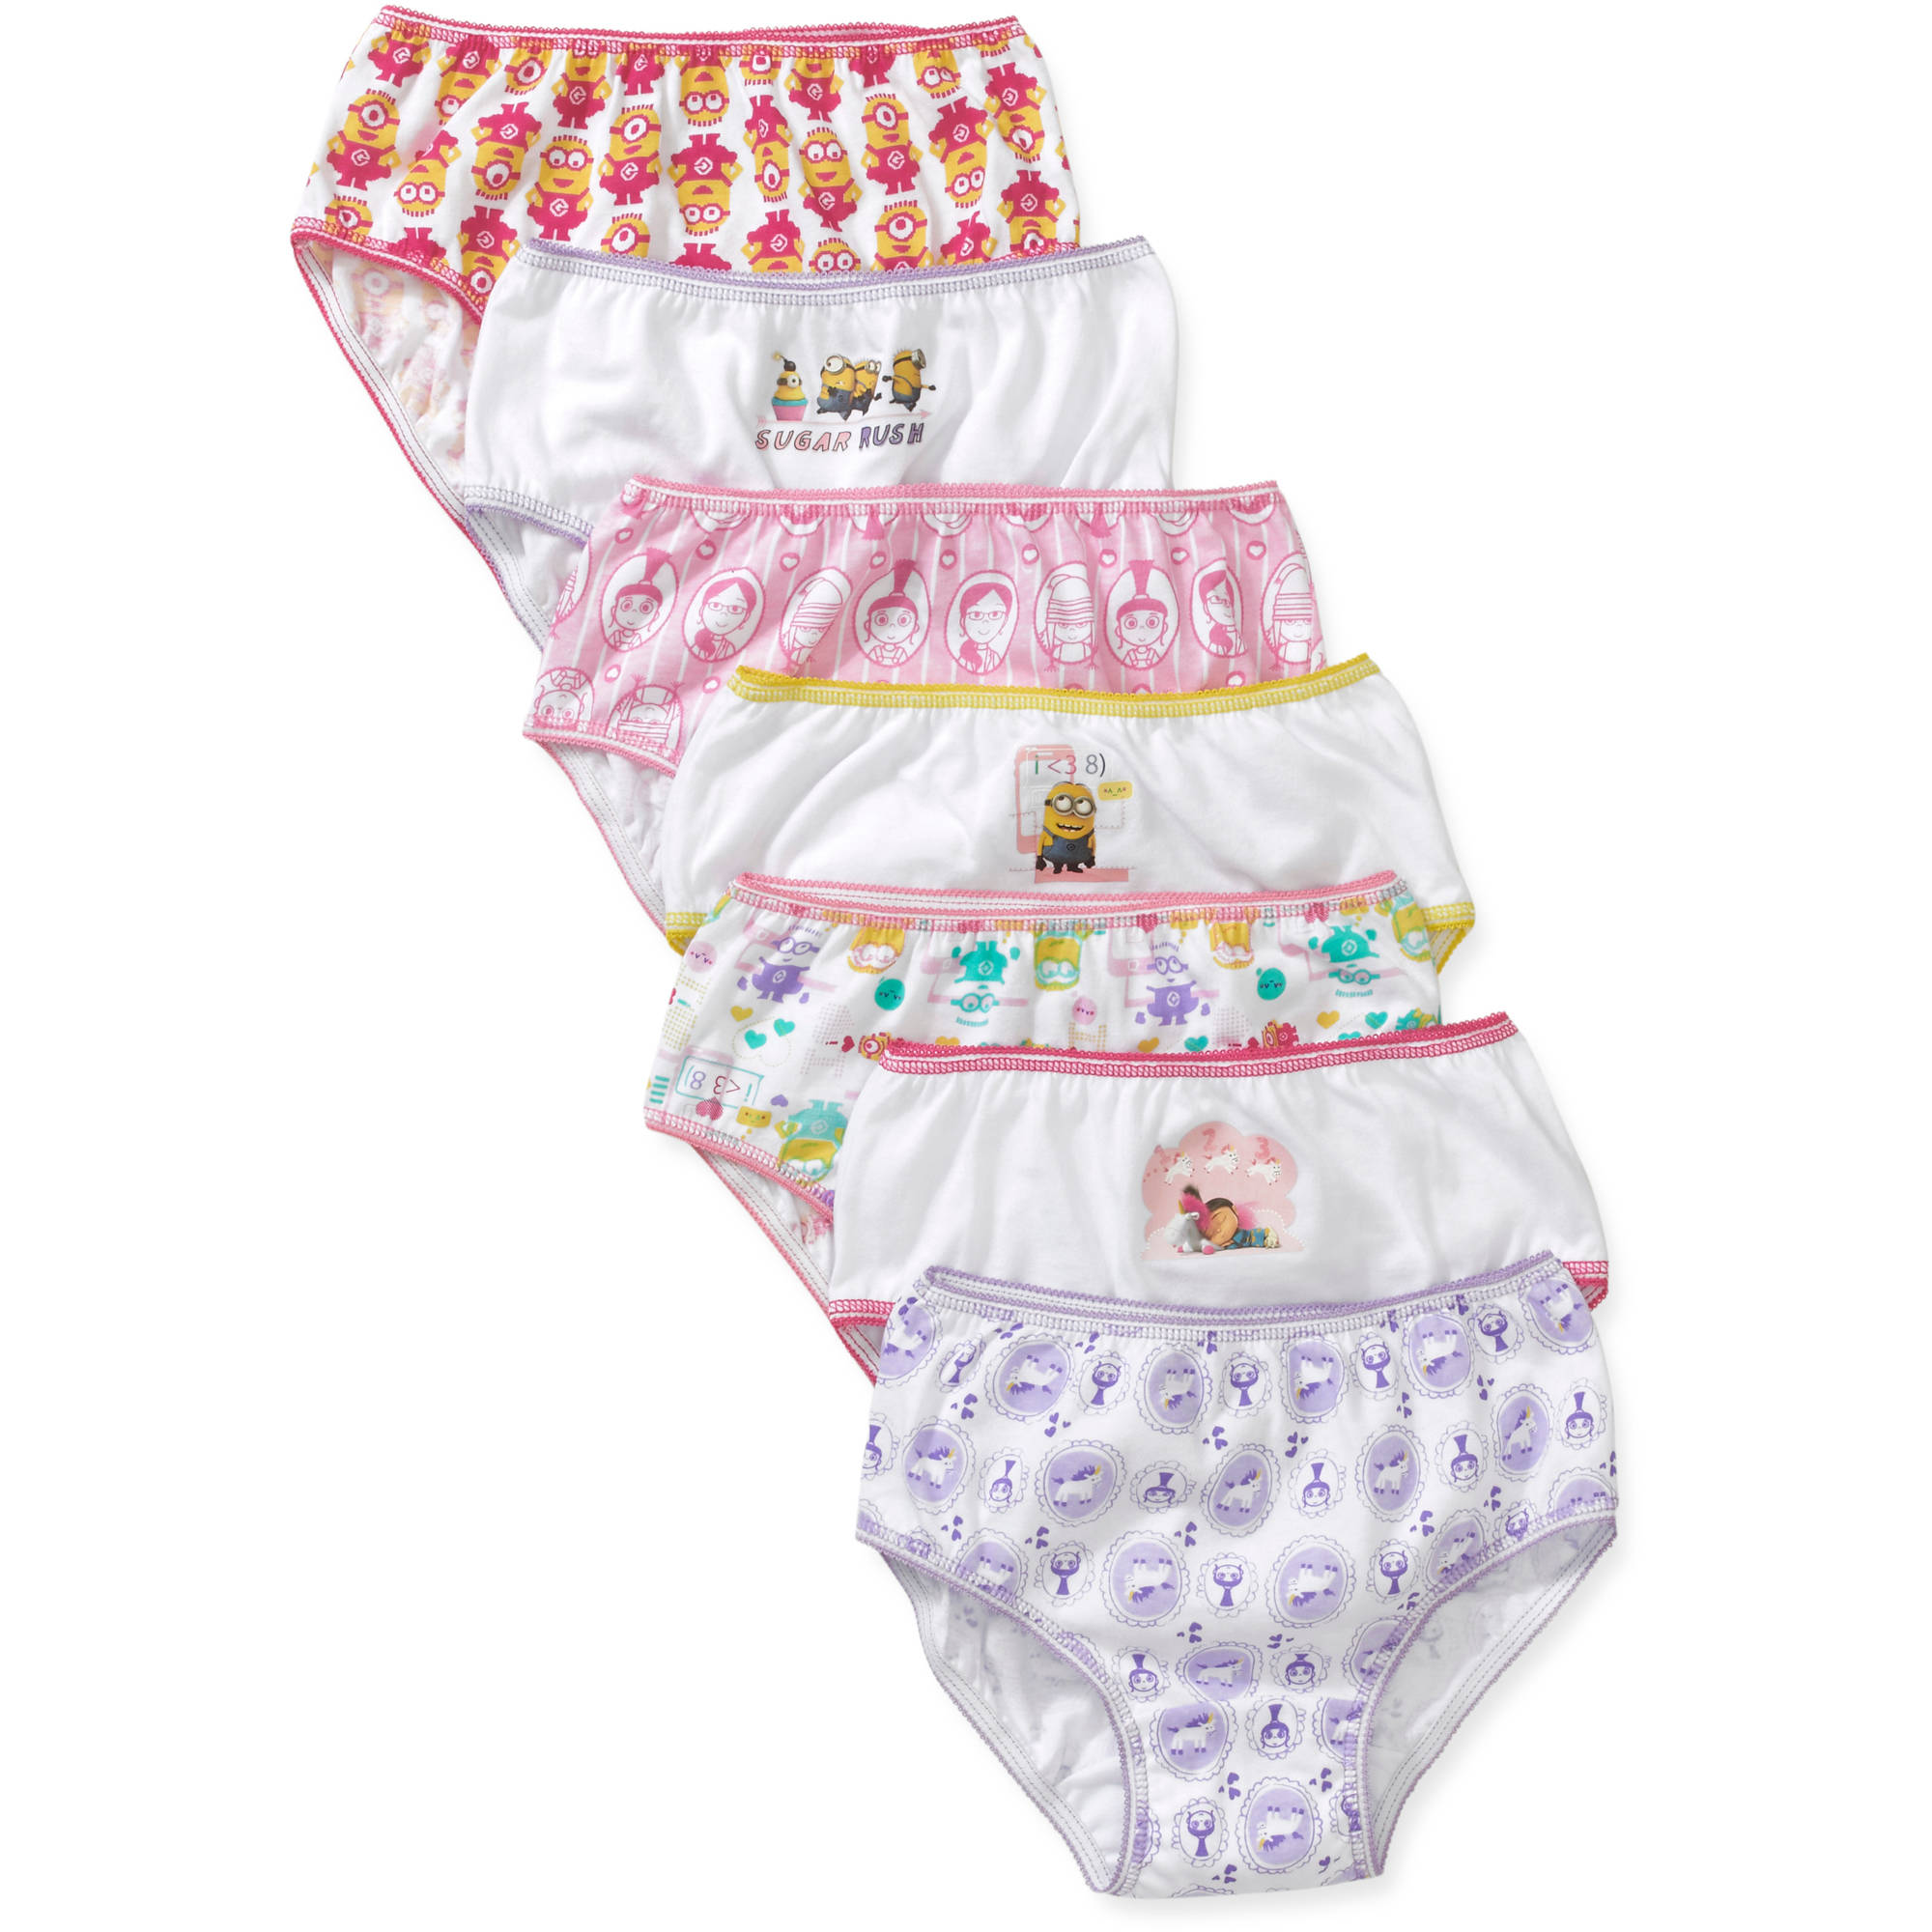 Despicable Me Girls' Underwear, 7 Pack